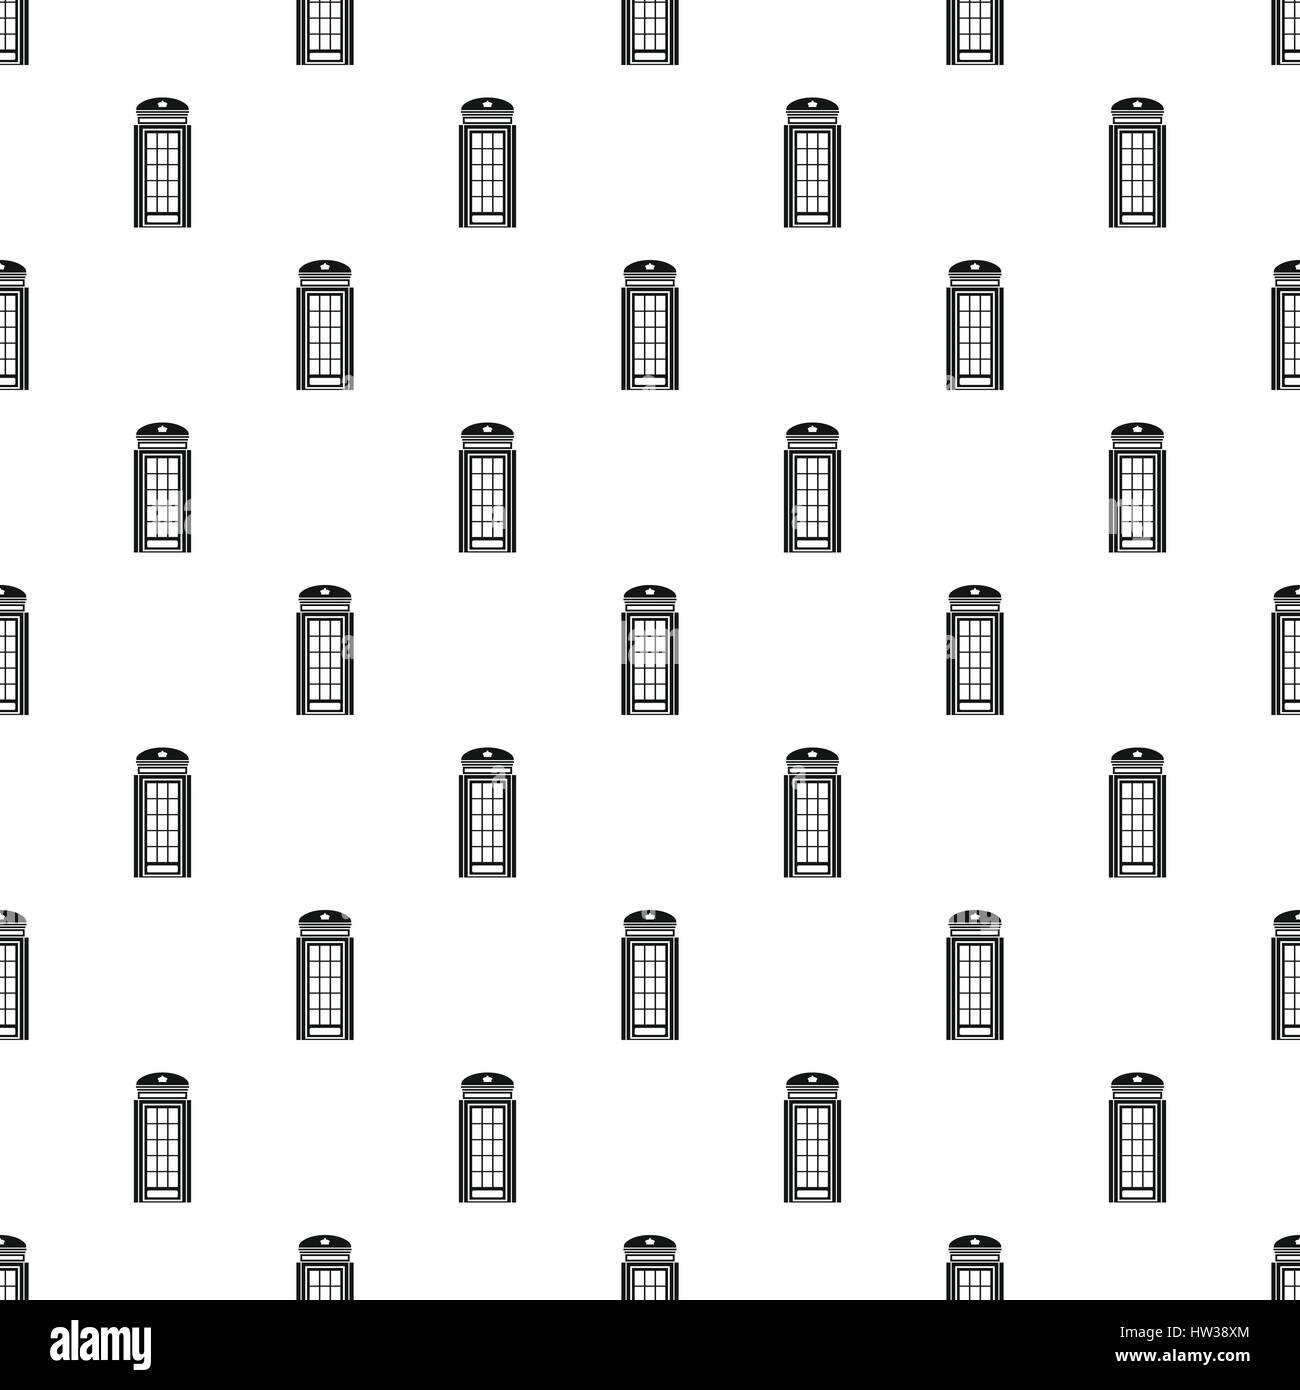 British phone booth pattern, simple style - Stock Image